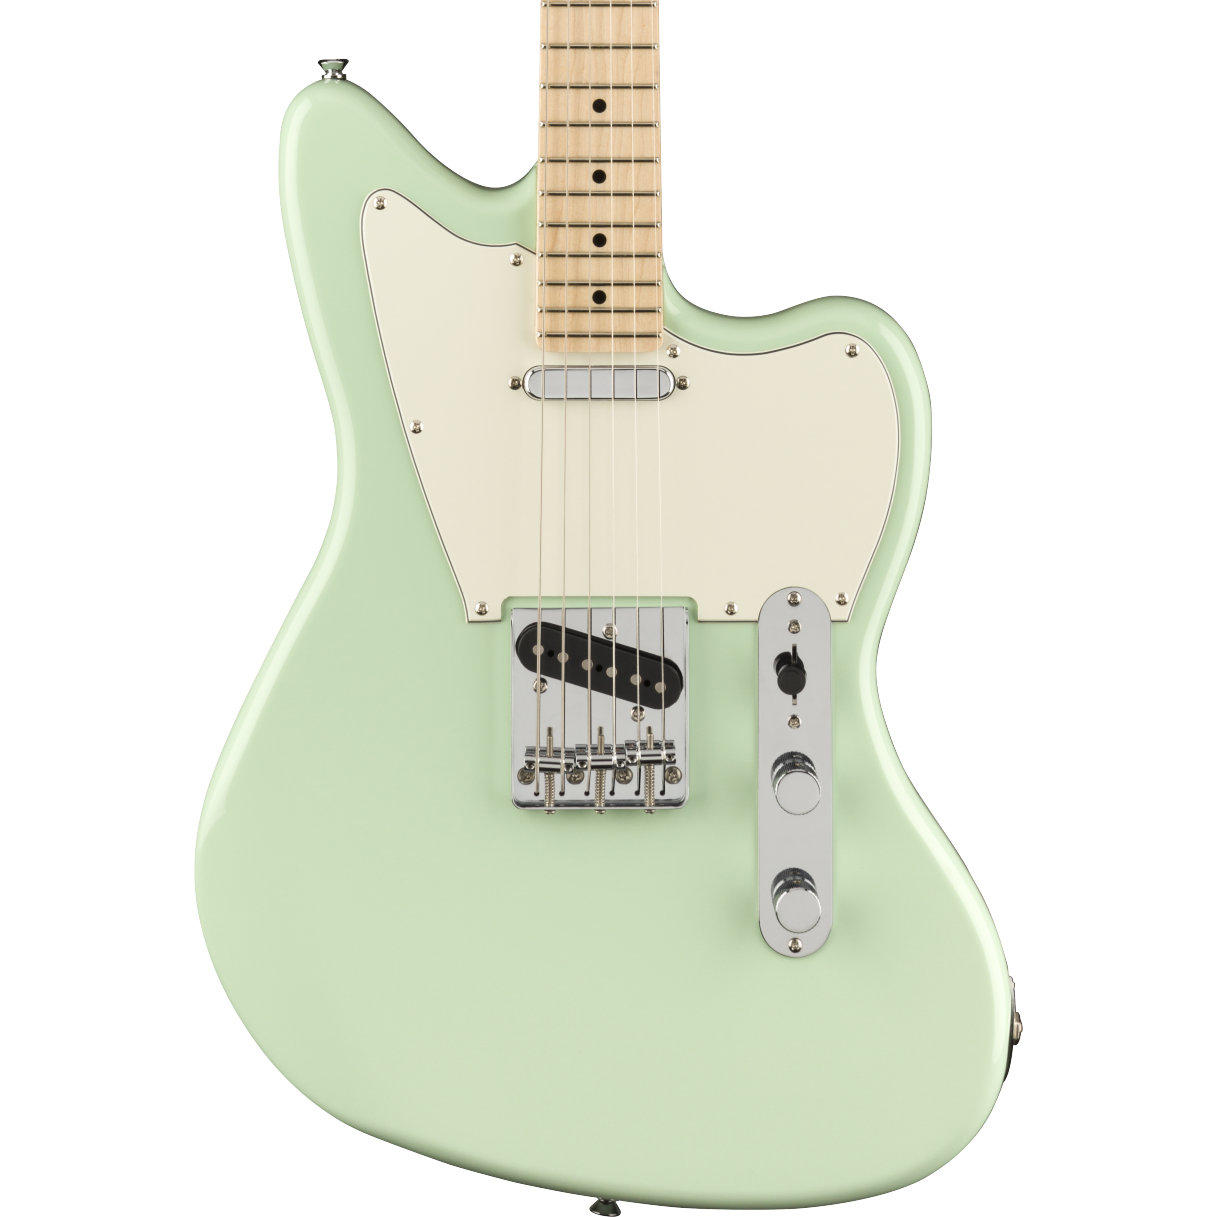 Squier Paranormal Offset Telecaster - Maple Fingerboard, Surf Green